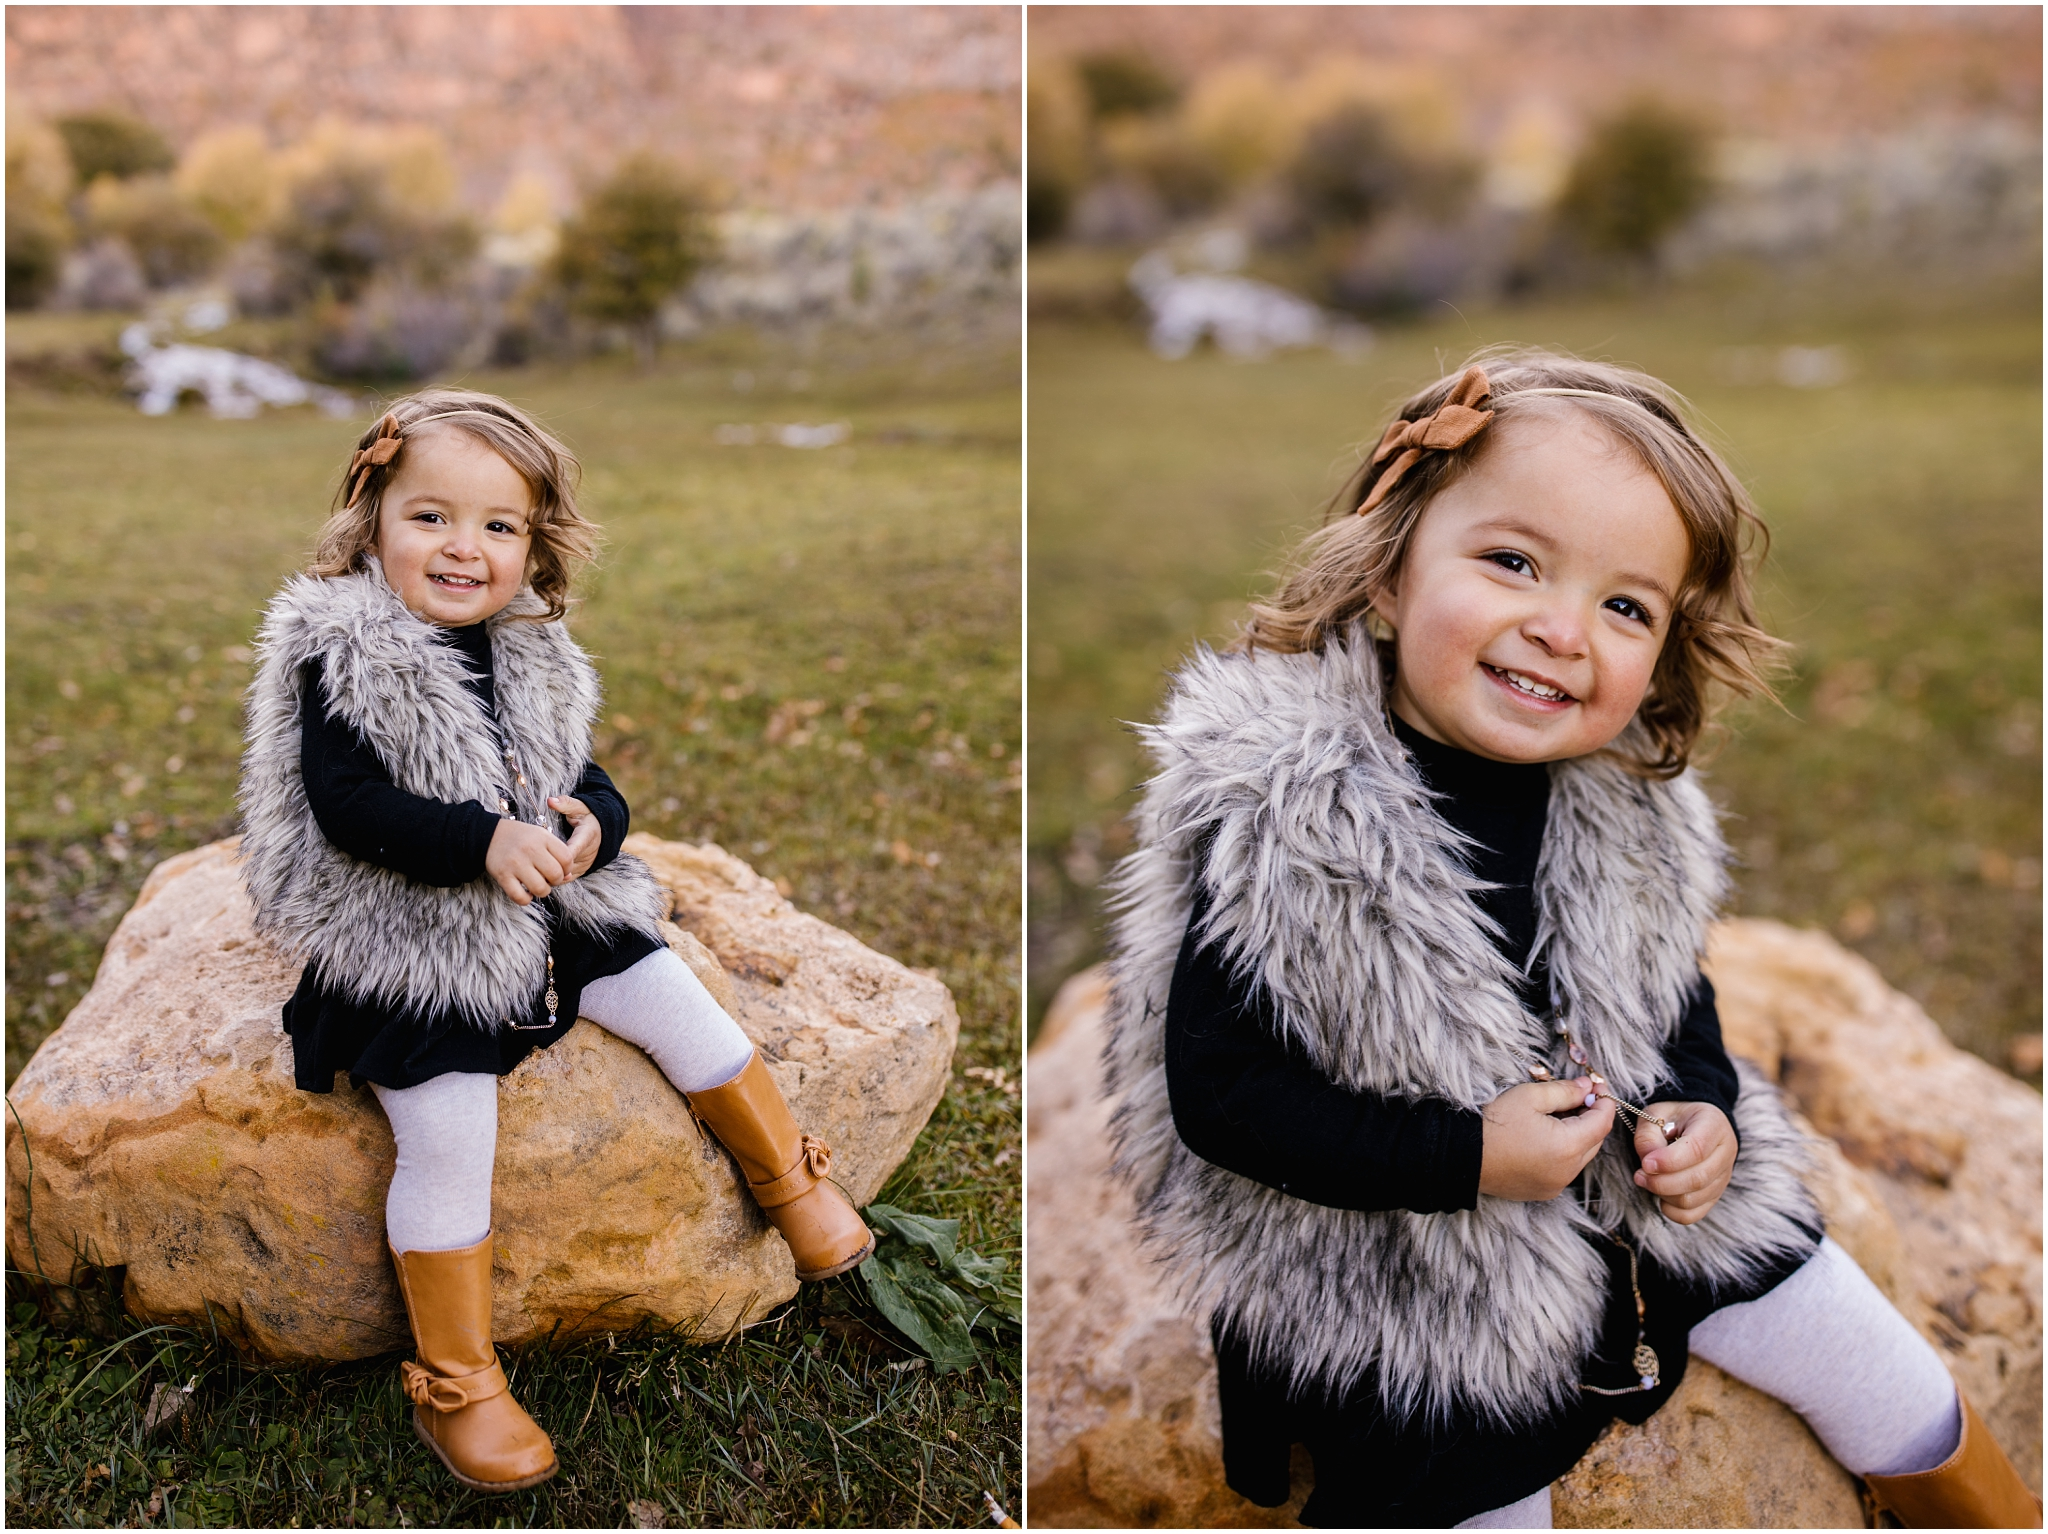 Frandsen-50_Lizzie-B-Imagery-Utah-Family-Photographer-Utah-County-Central-Utah-Park-City-Salt-Lake-City.jpg